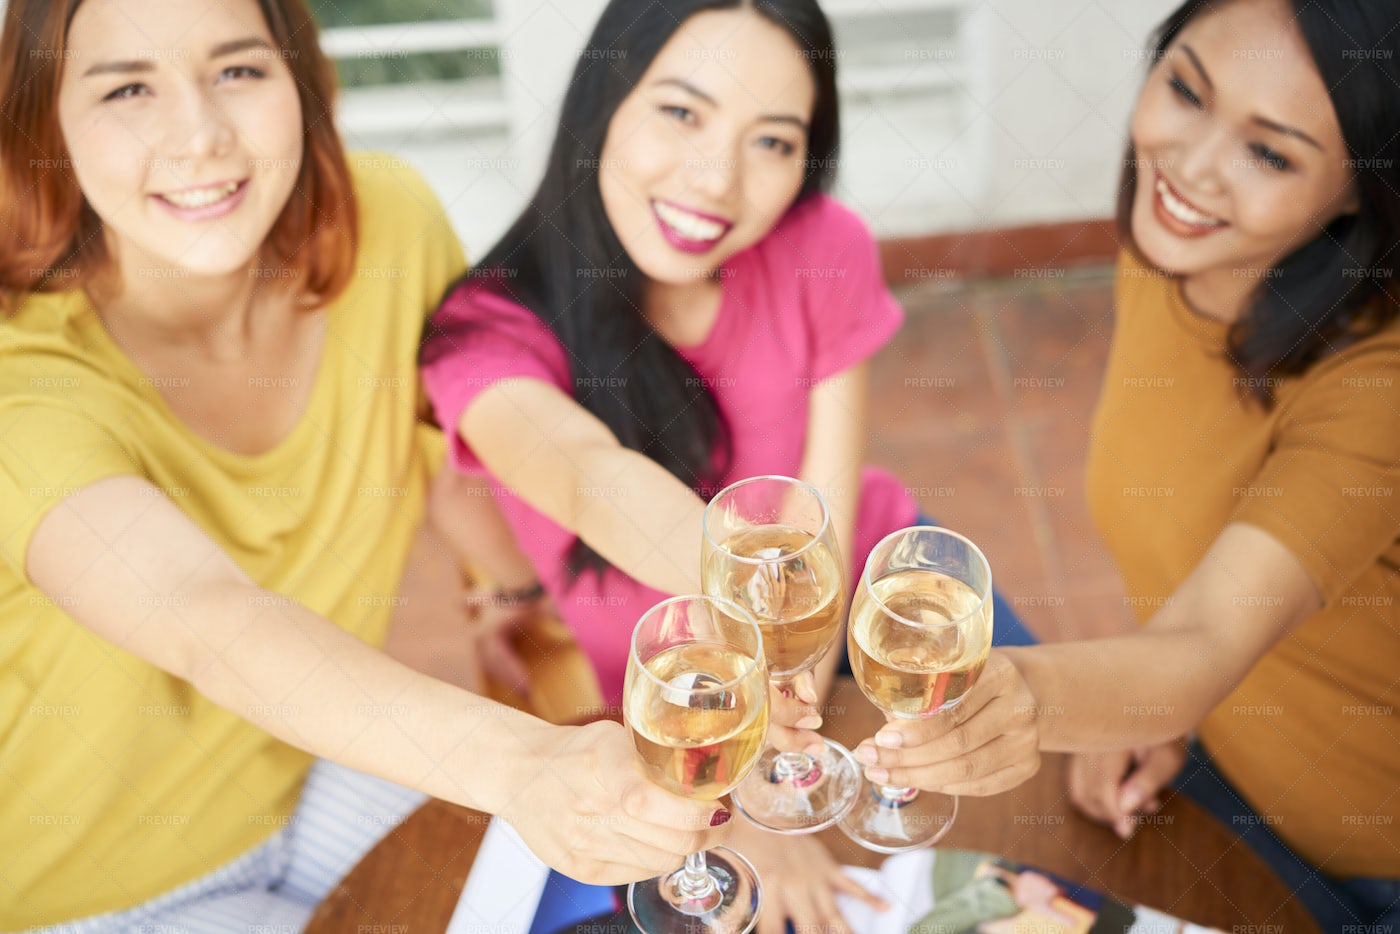 Women Celebrating With Champagne: Stock Photos